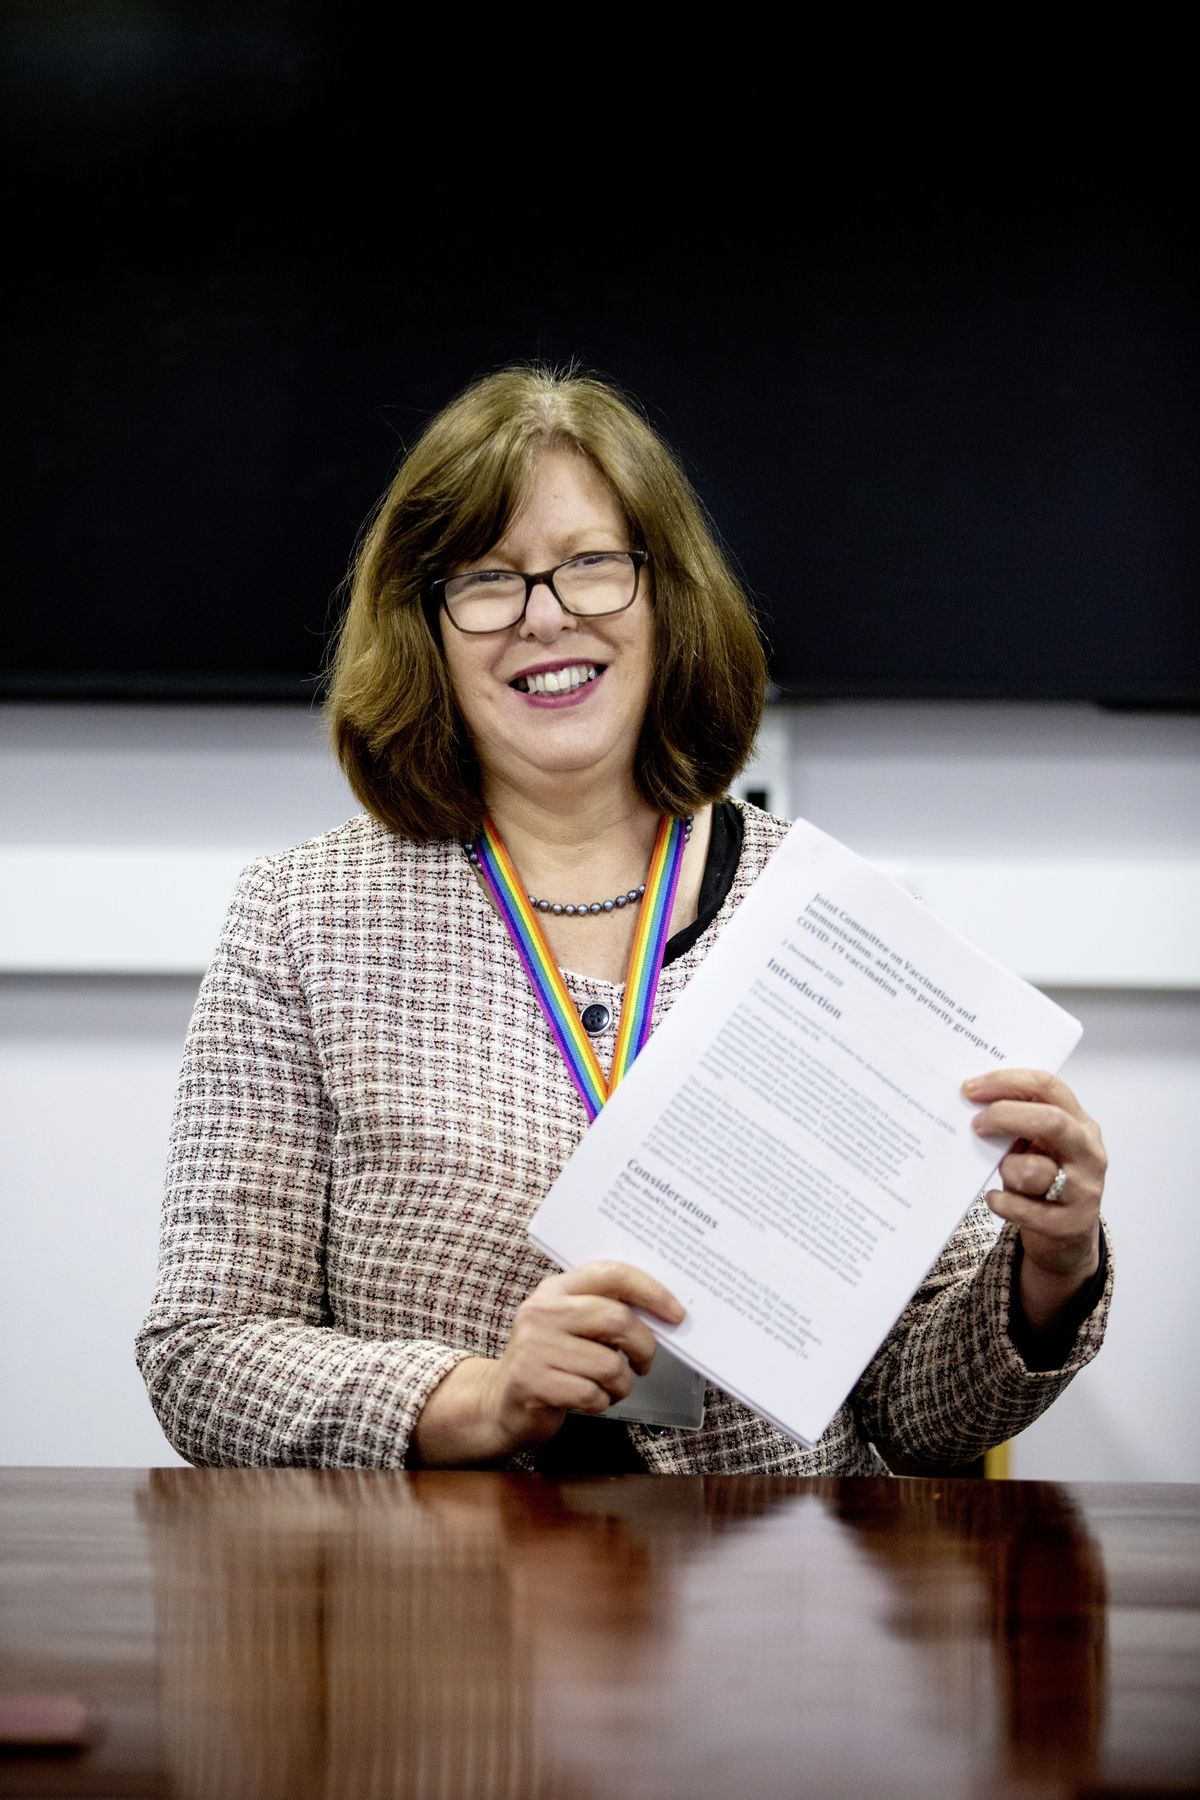 Dr Nicola Brink with the UK press release announcing the approval of the Pfizer/BioNTech Covid-19 vaccine. (Picture by Peter Frankland, 28975729)